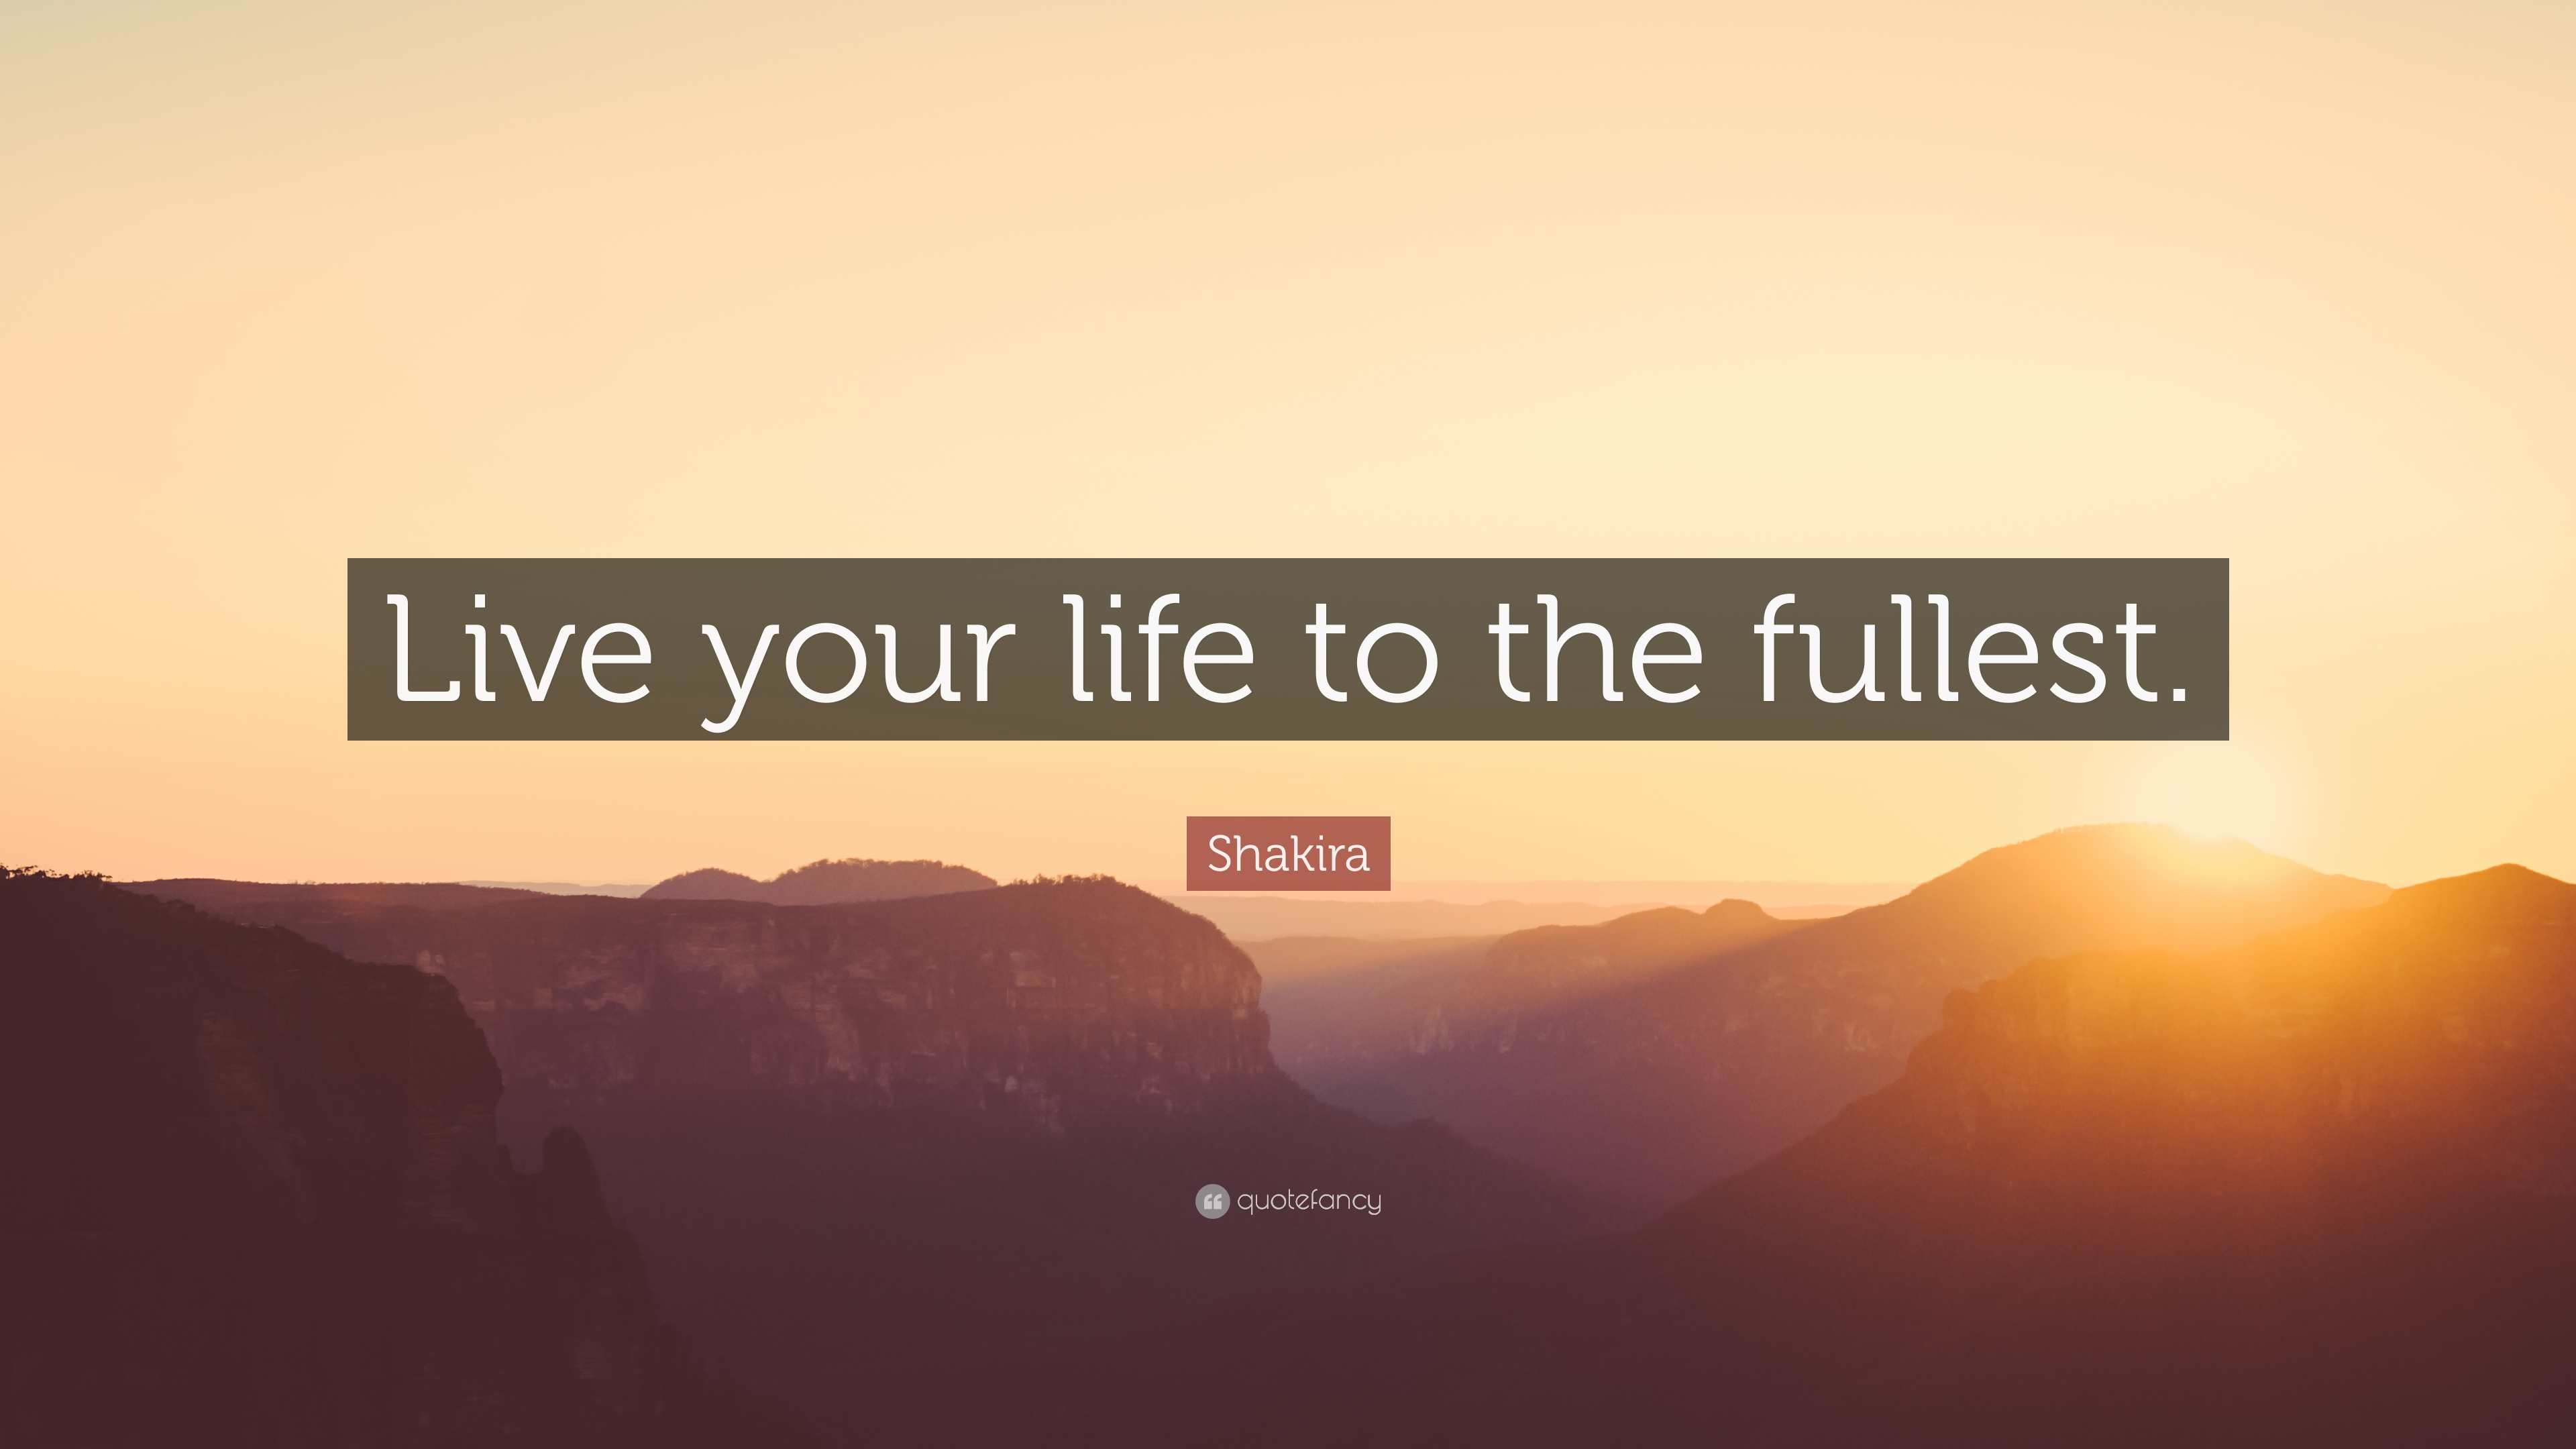 Quotes To Live Your Life By Shakira Quotes 73 Wallpapers  Quotefancy